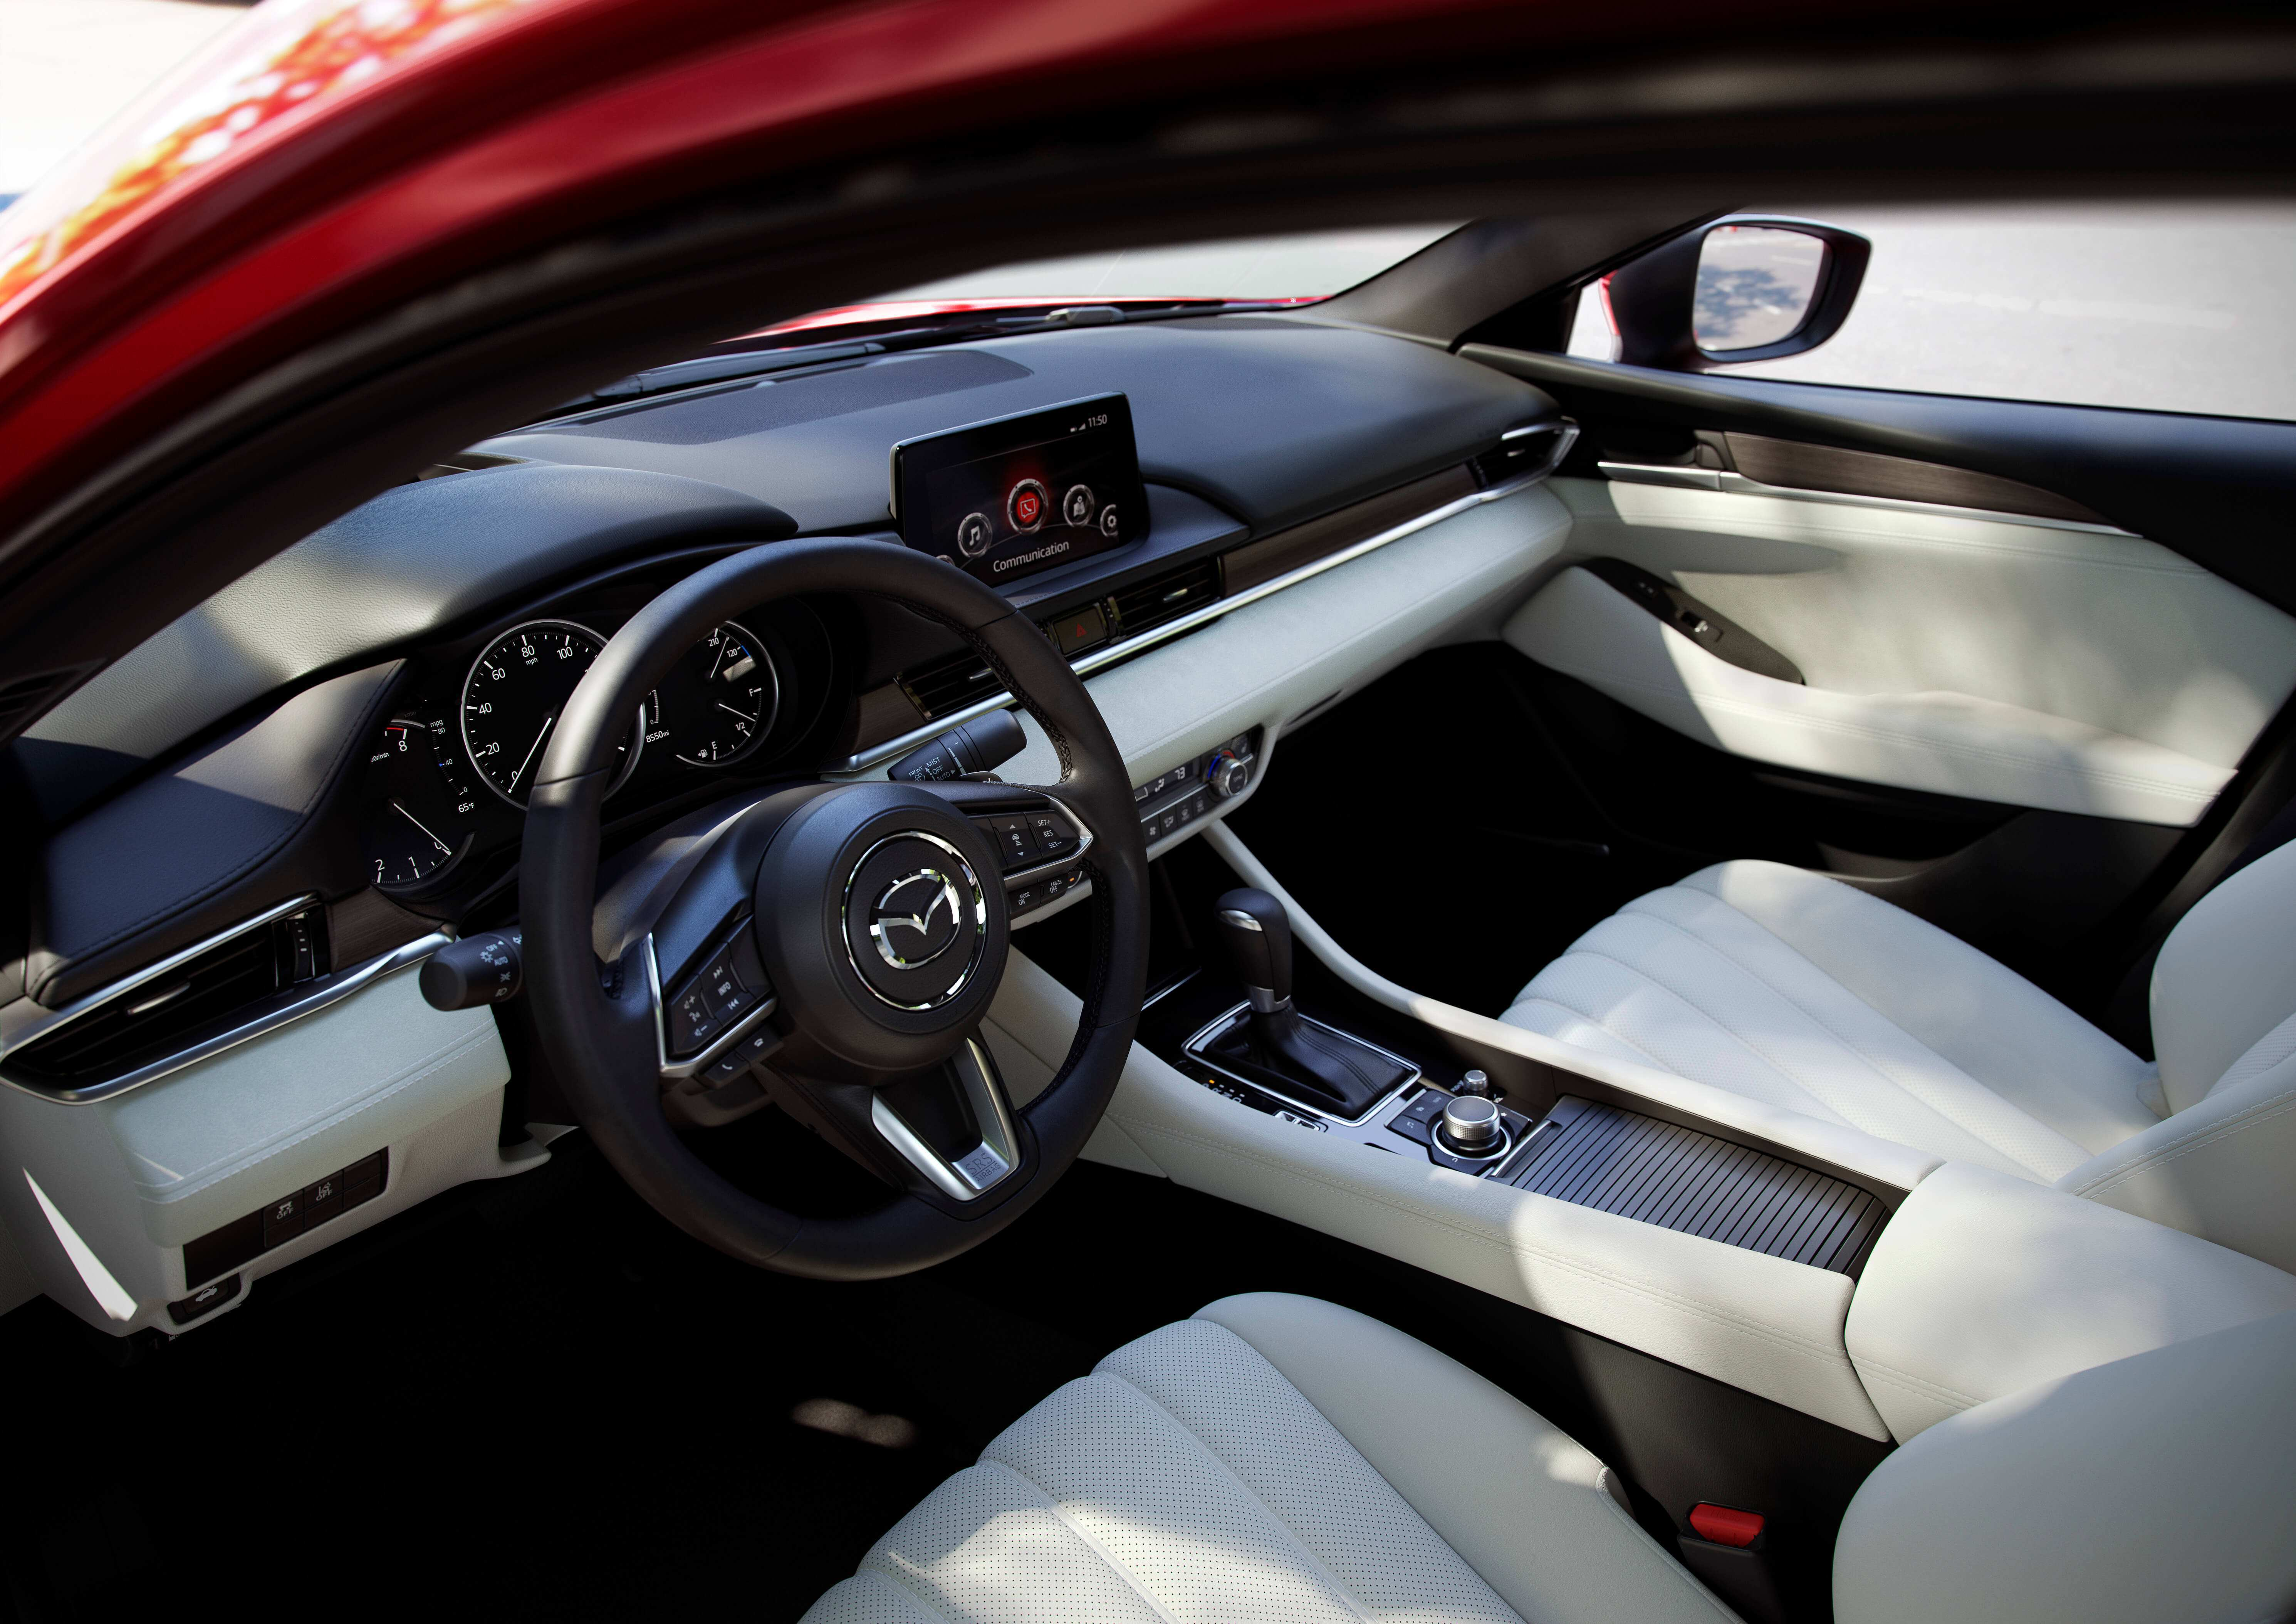 23 Gallery of The Mazda 2019 Engine New Interior New Concept for The Mazda 2019 Engine New Interior